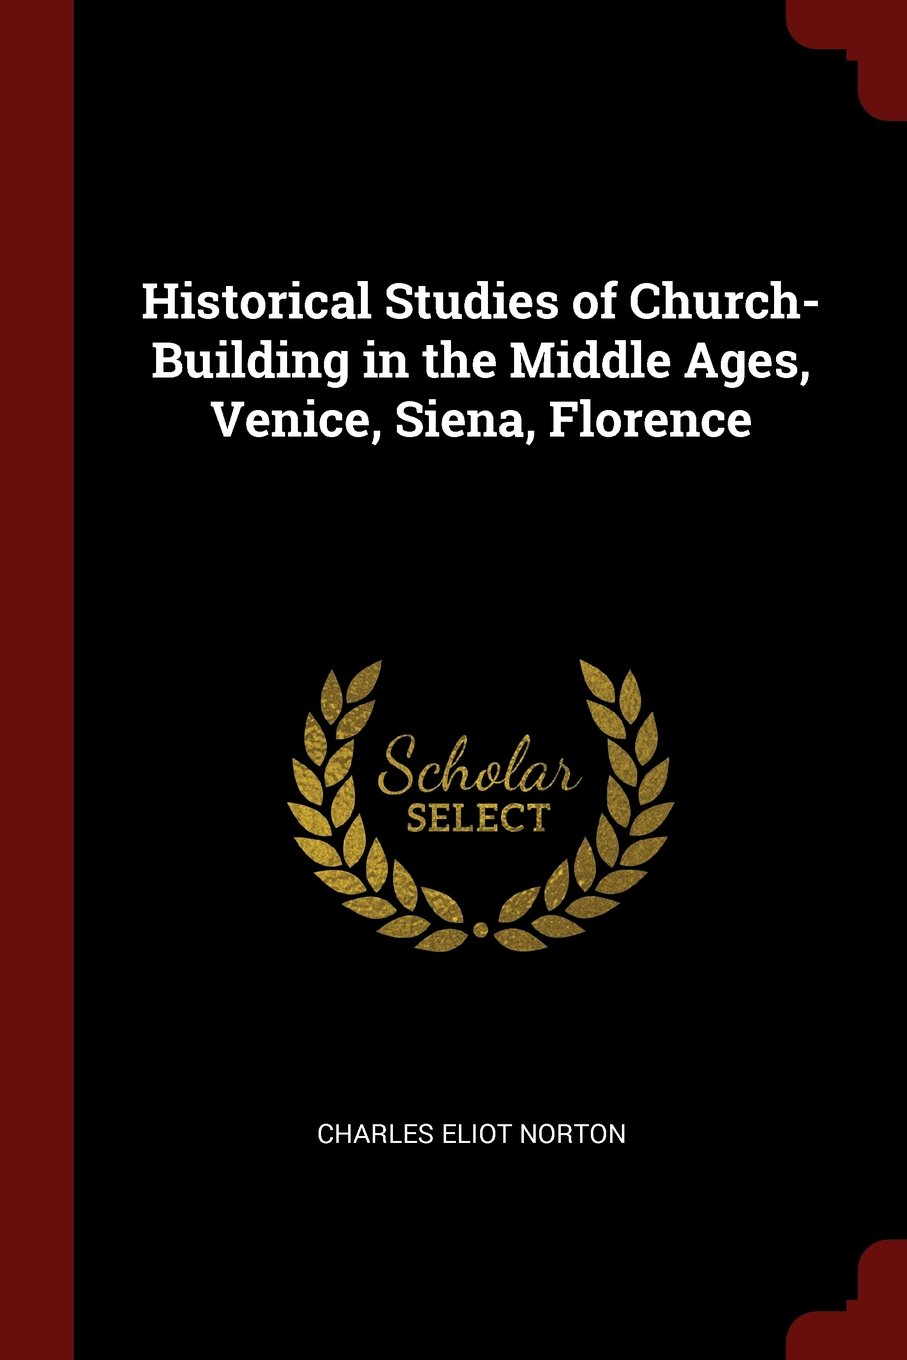 Historical Studies of Church-Building in the Middle Ages, Venice, Siena, Florence ebook